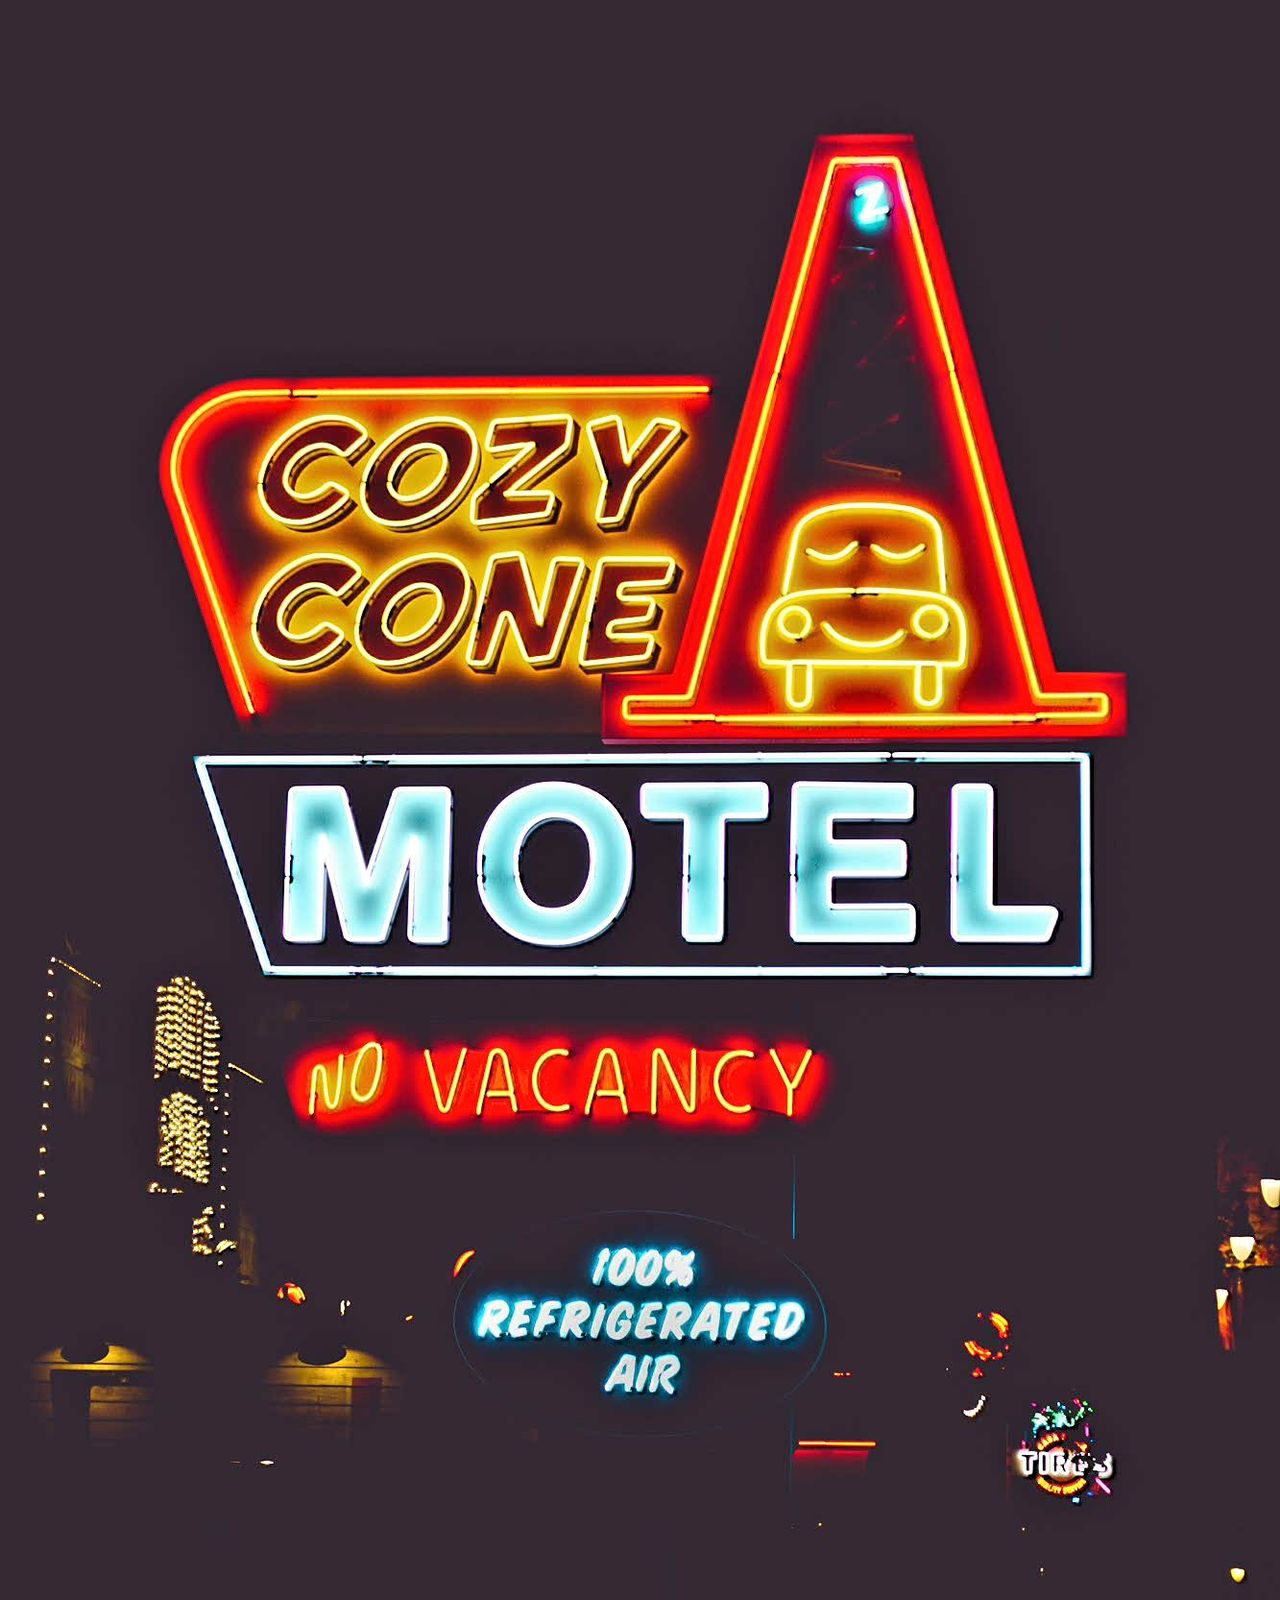 Yes vacancy Disney Dca Disney California Adventure Disneyland Carsland  Cars Land Waltdisney Pixar  Cozy Cone Neon Text Hotel Travel City Vacations Motel Restaurant Night Bar - Drink Establishment Travel Destinations Illuminated Sky No People Outdoors